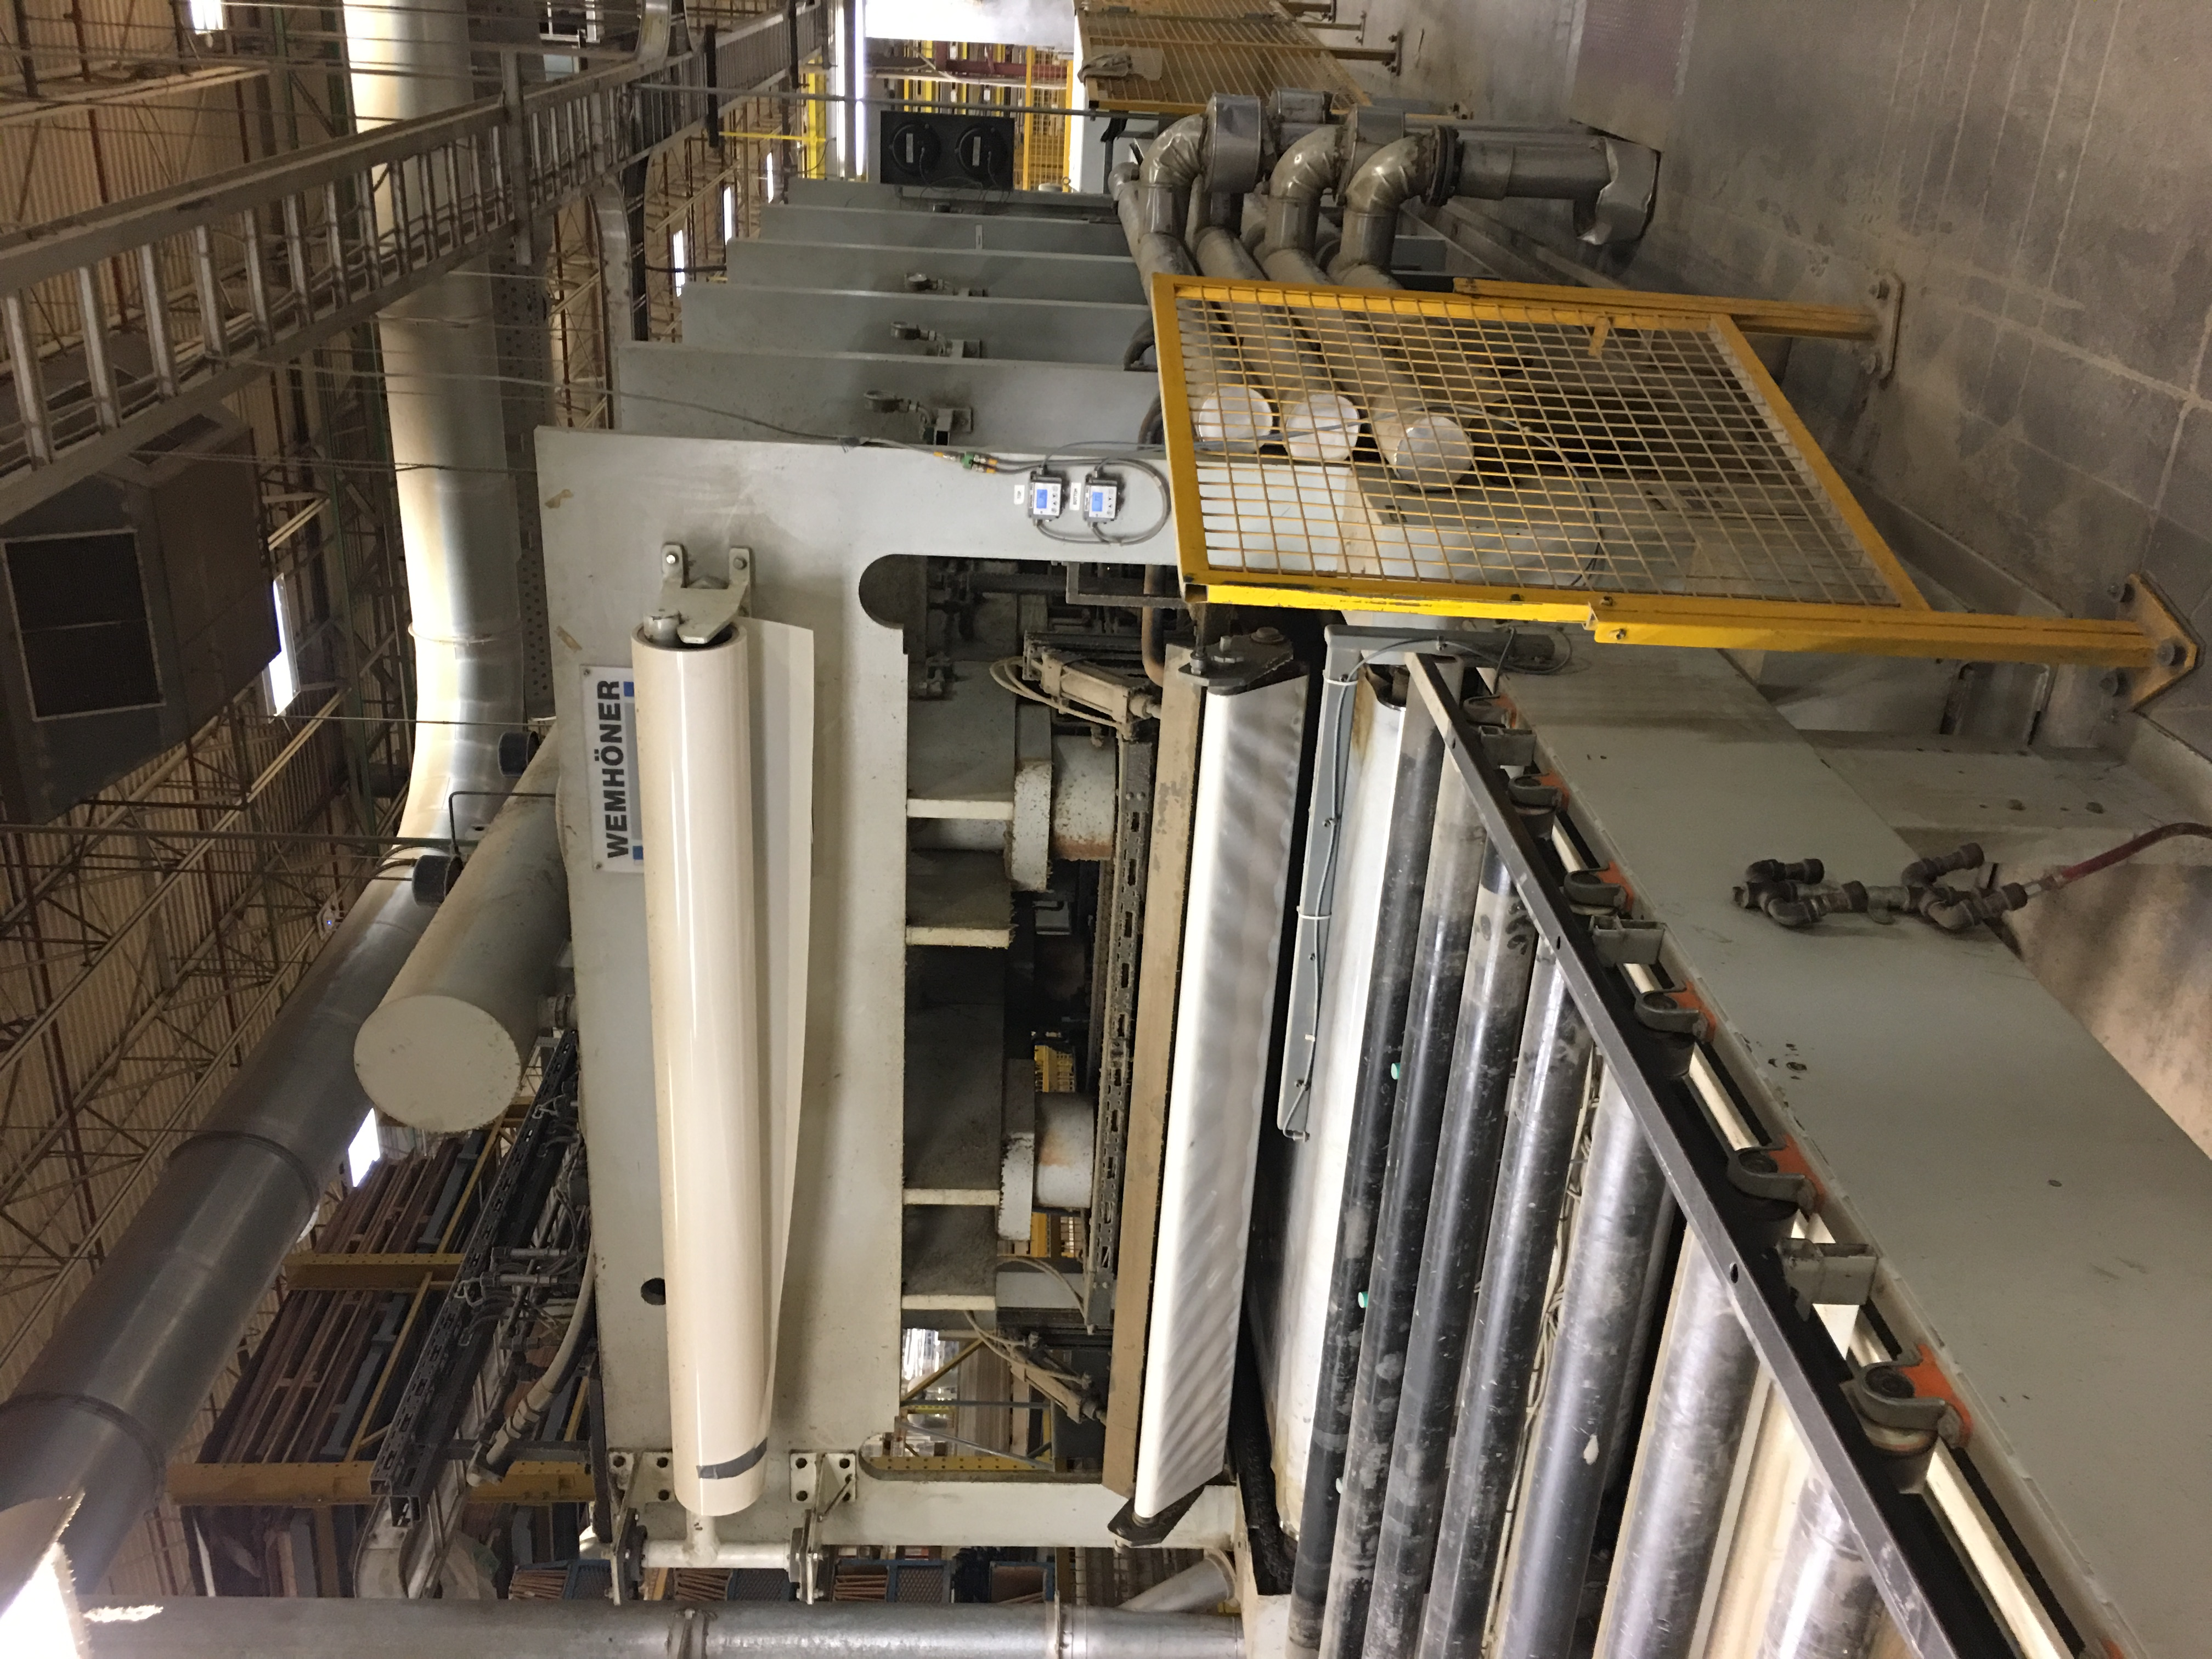 WEMHONER PRESS including infeed conveyor outfeed conveyor - Image 3 of 9